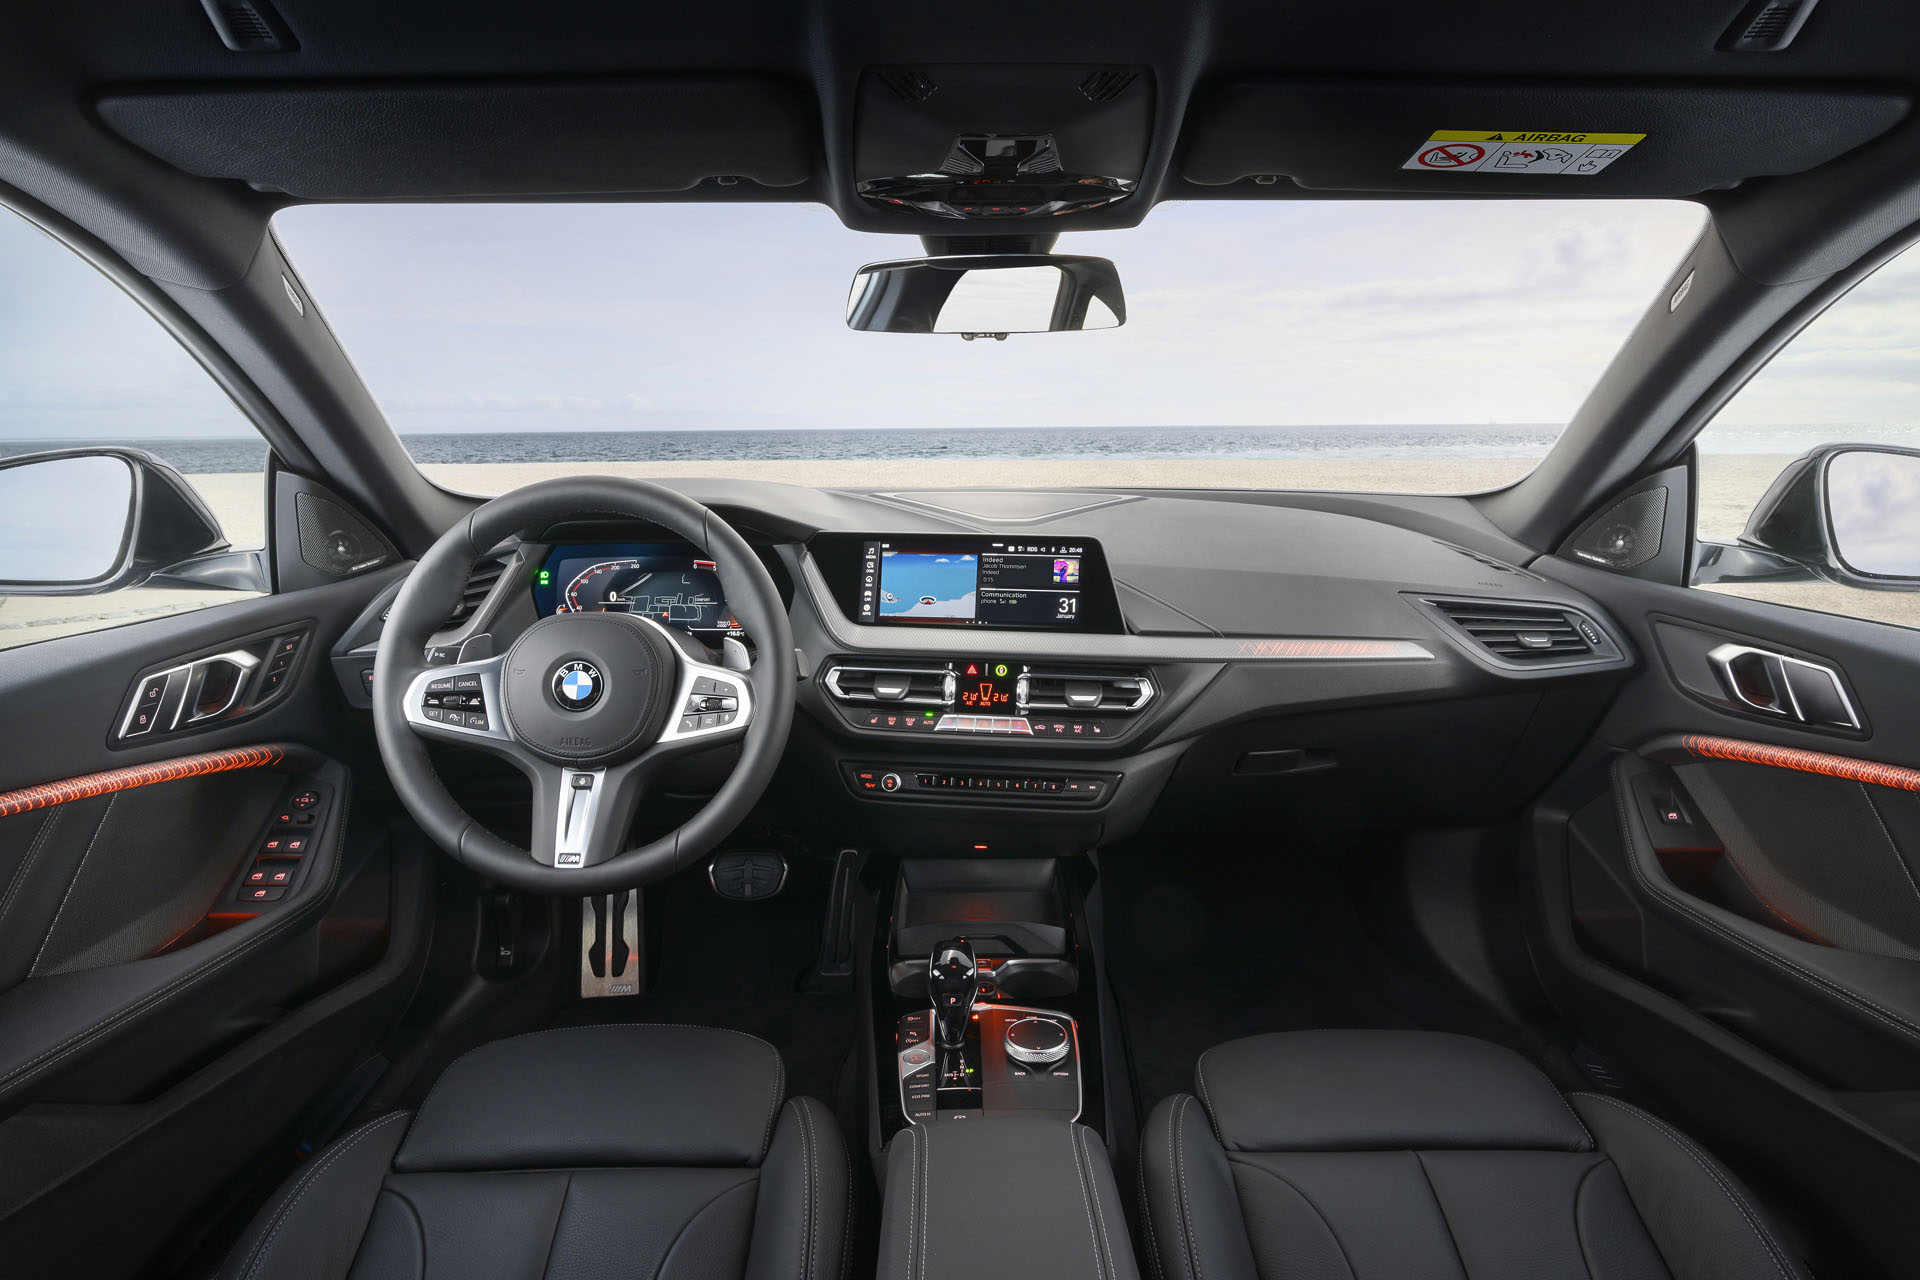 Bmw Lanca Novo Serie 2 Gran Coupe No Brasil Revista Car Stereo